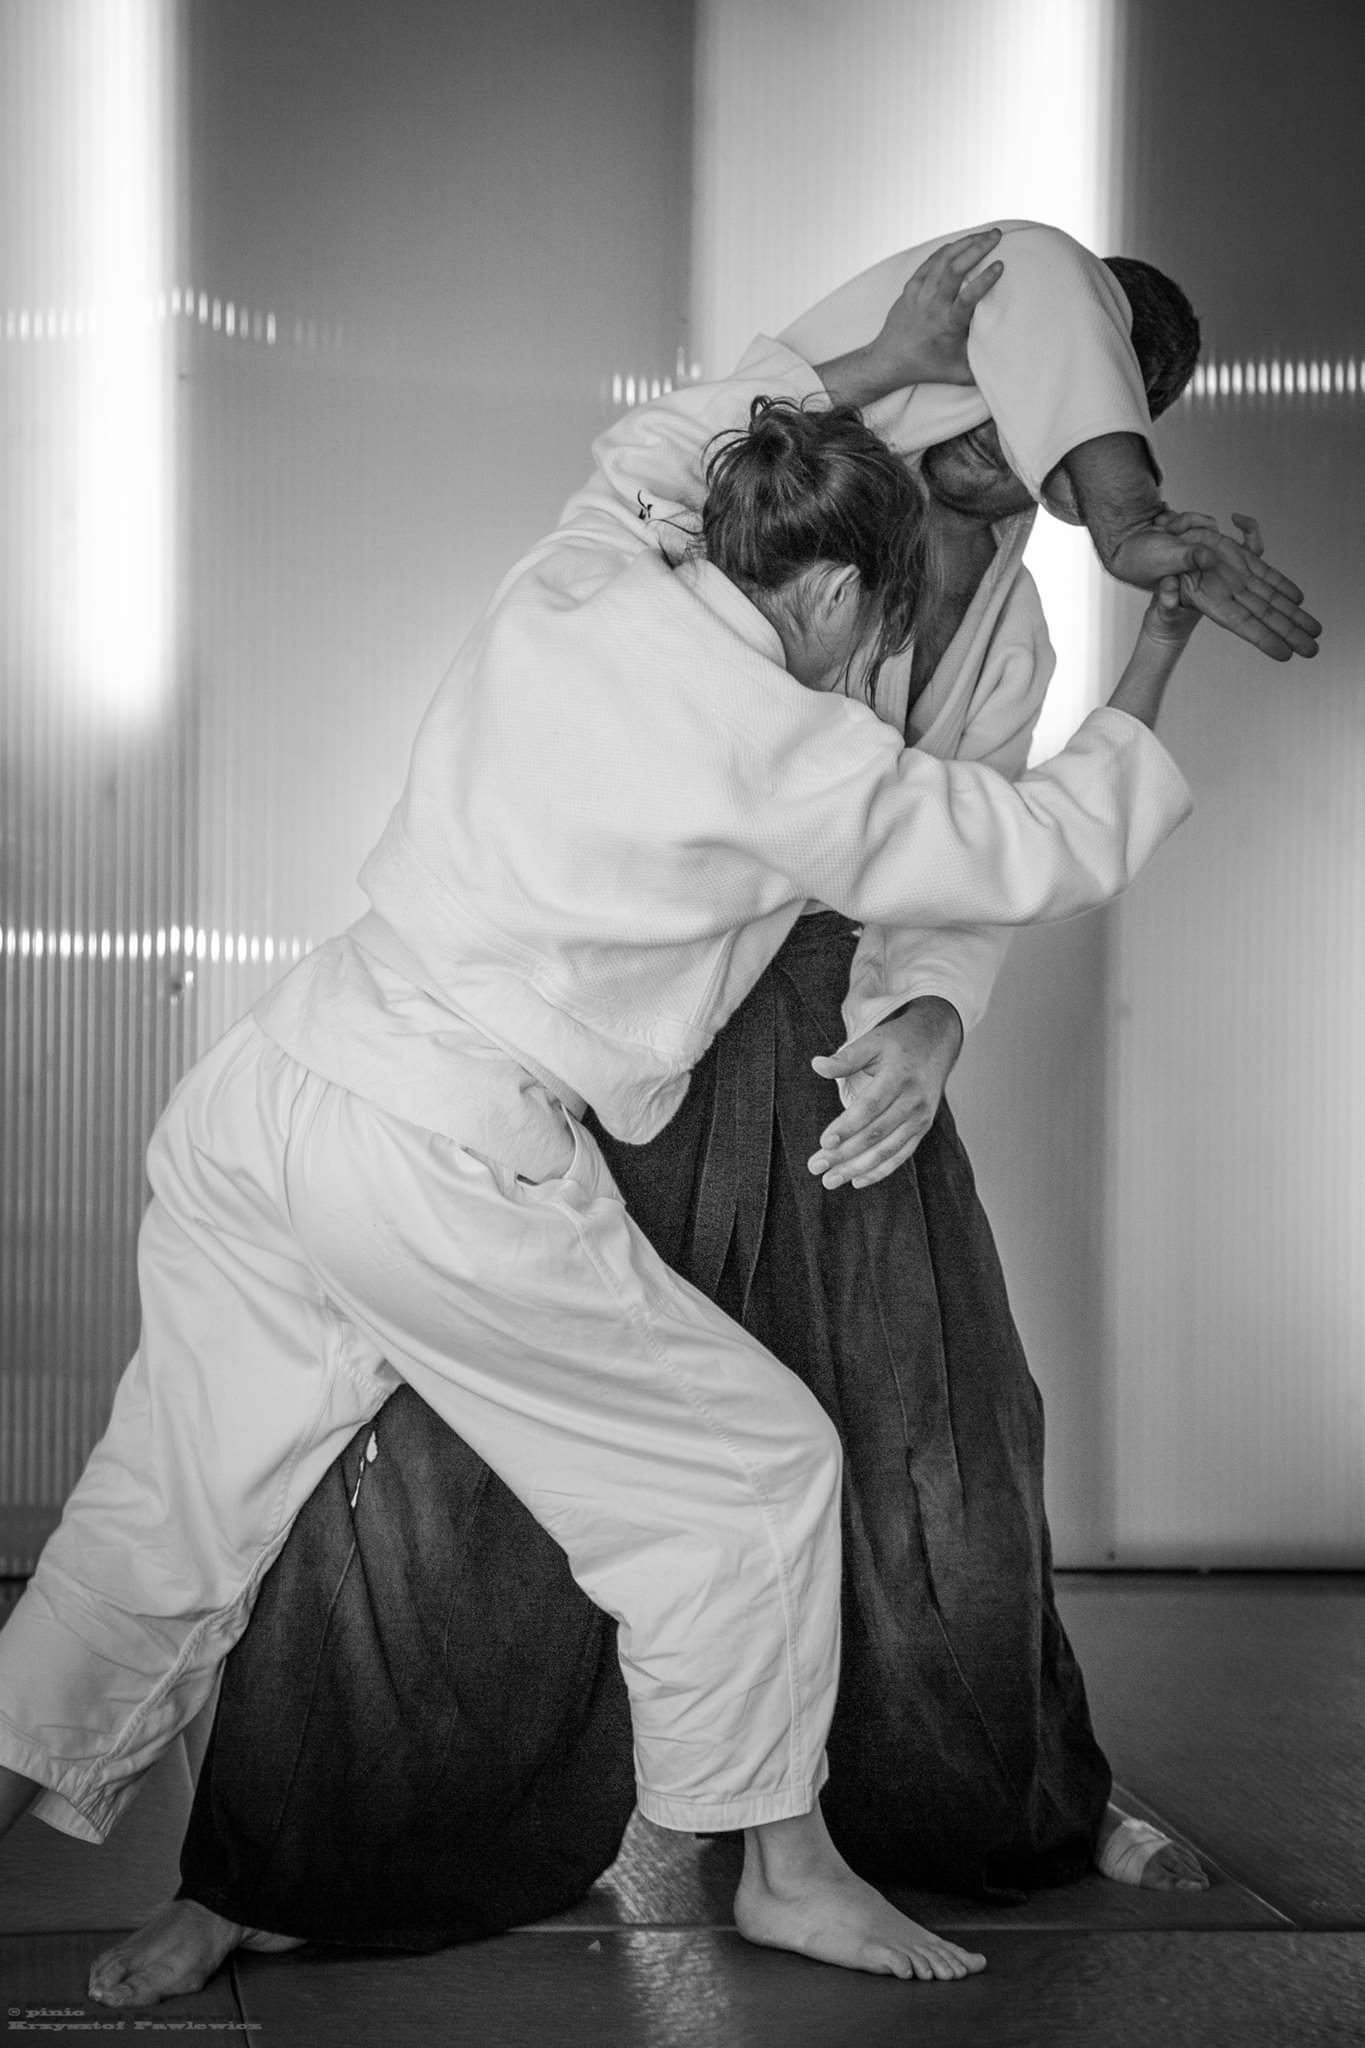 Aikido - is a Japanese martial art that deals with aggression by blending with and redirecting an attack rather than meeting it head on. Its techniques are based on natural flowing motion rather than strength, so aikido is suitable for both sexes and for people of all ages.As well as being an effective form of self-defence, aikido's natural movements help to relax the body and to release stress and tension. Regular practise will improve co-ordination, posture, self confidence, concentration and fitness level.Students can begin by attending any of our classes. No special equipment is required - just loose, comfortable clothing such as tracksuit bottoms and a t-shirt. Classes take place in a friendly, open environment where beginners and more advanced students train together.Want to know more?What is Aikido →